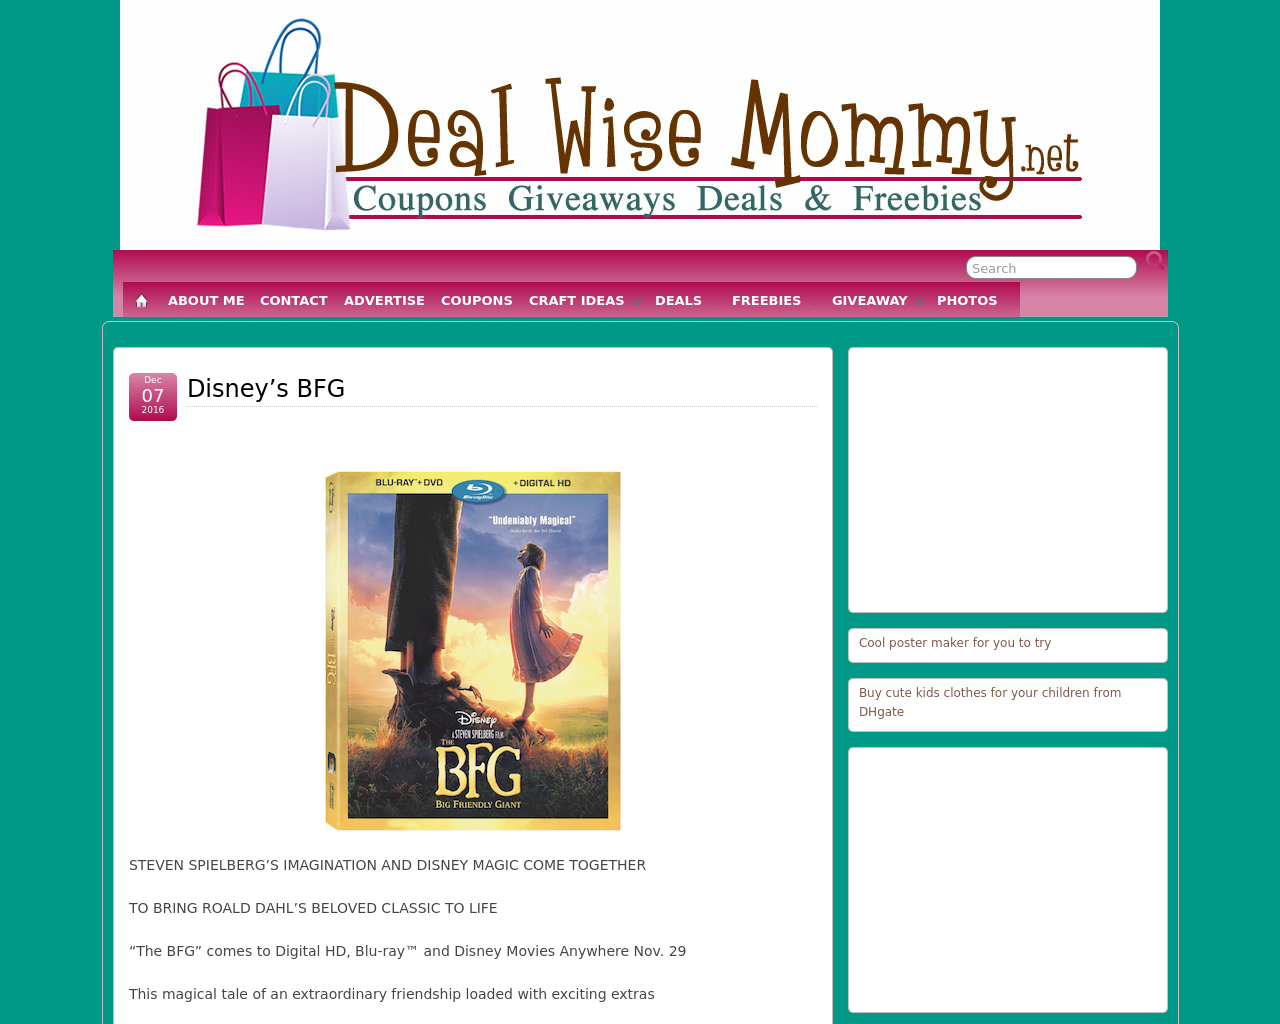 Deal-Wise-Mommy-Advertising-Reviews-Pricing